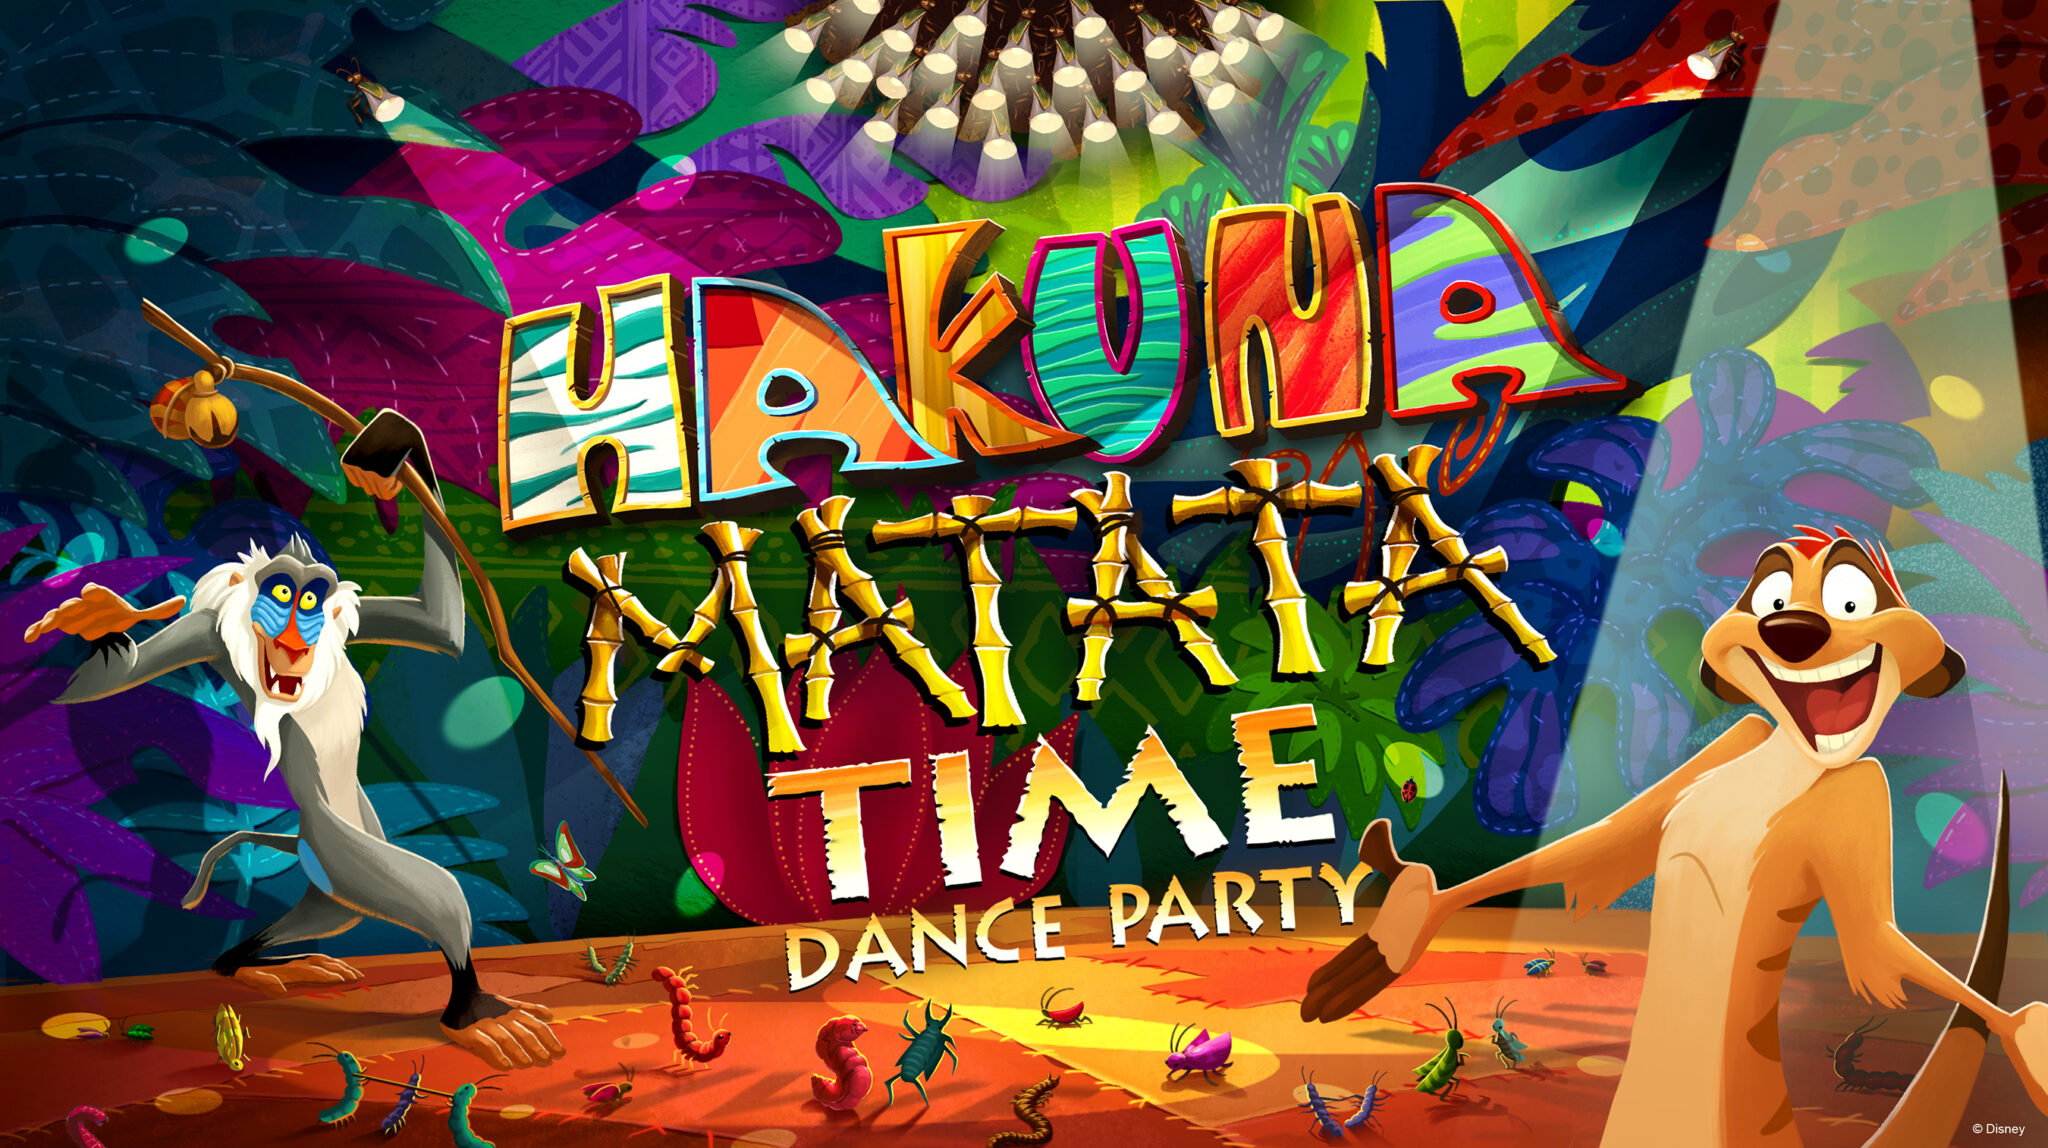 Celebrate The Lion King 25th anniversary Disney World in 2019 with the new Hakuna Matata Time Dance Party.